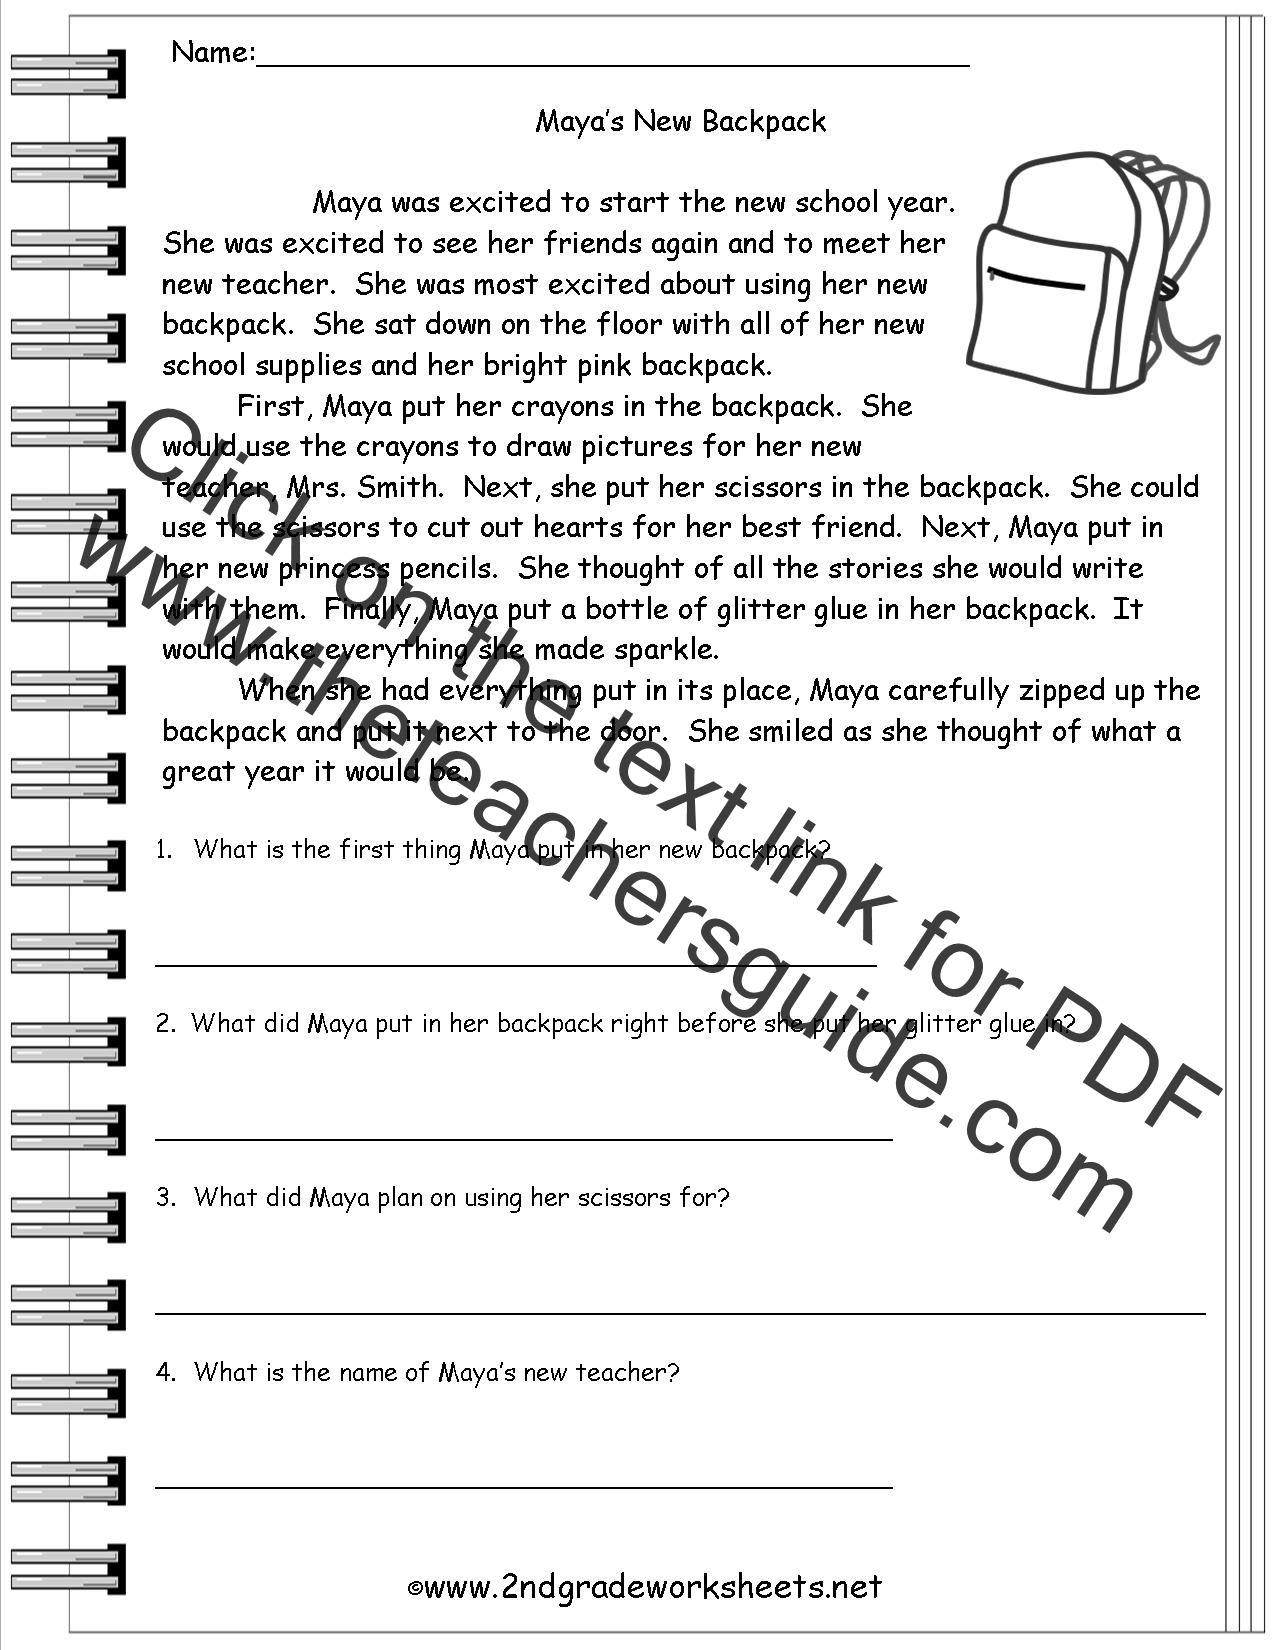 Worksheets Second Grade Reading Comprehension Printable Worksheets reading worksheeets worksheets